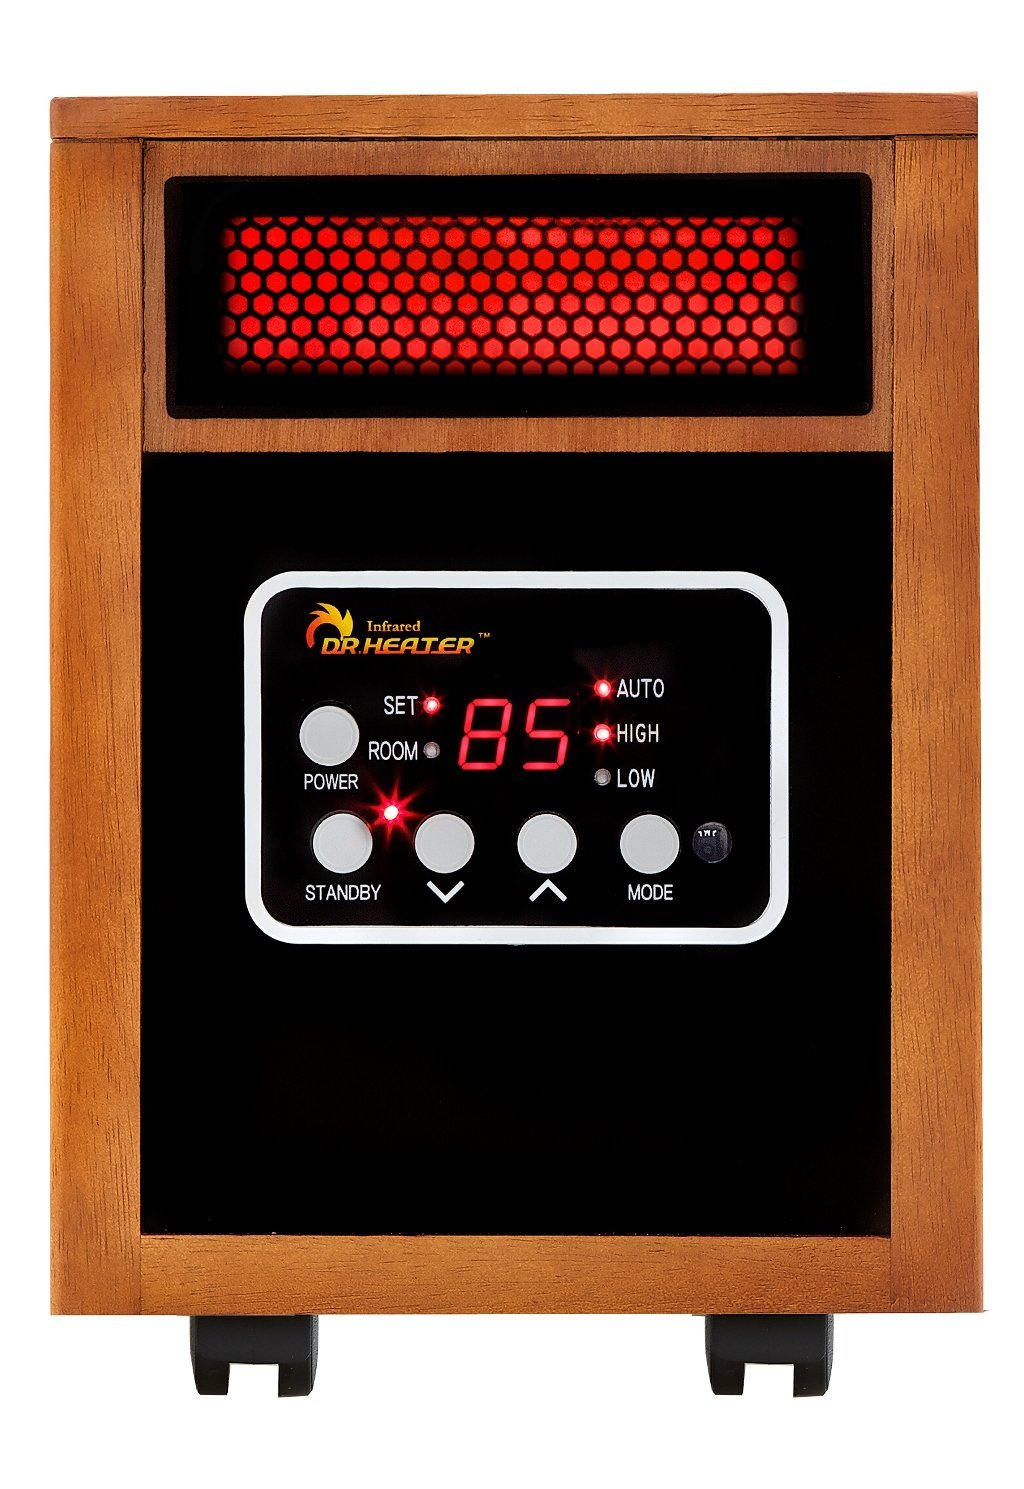 Dr Infrared Heater 1500-Watt Portable Space Heater – Available In 3 Styles